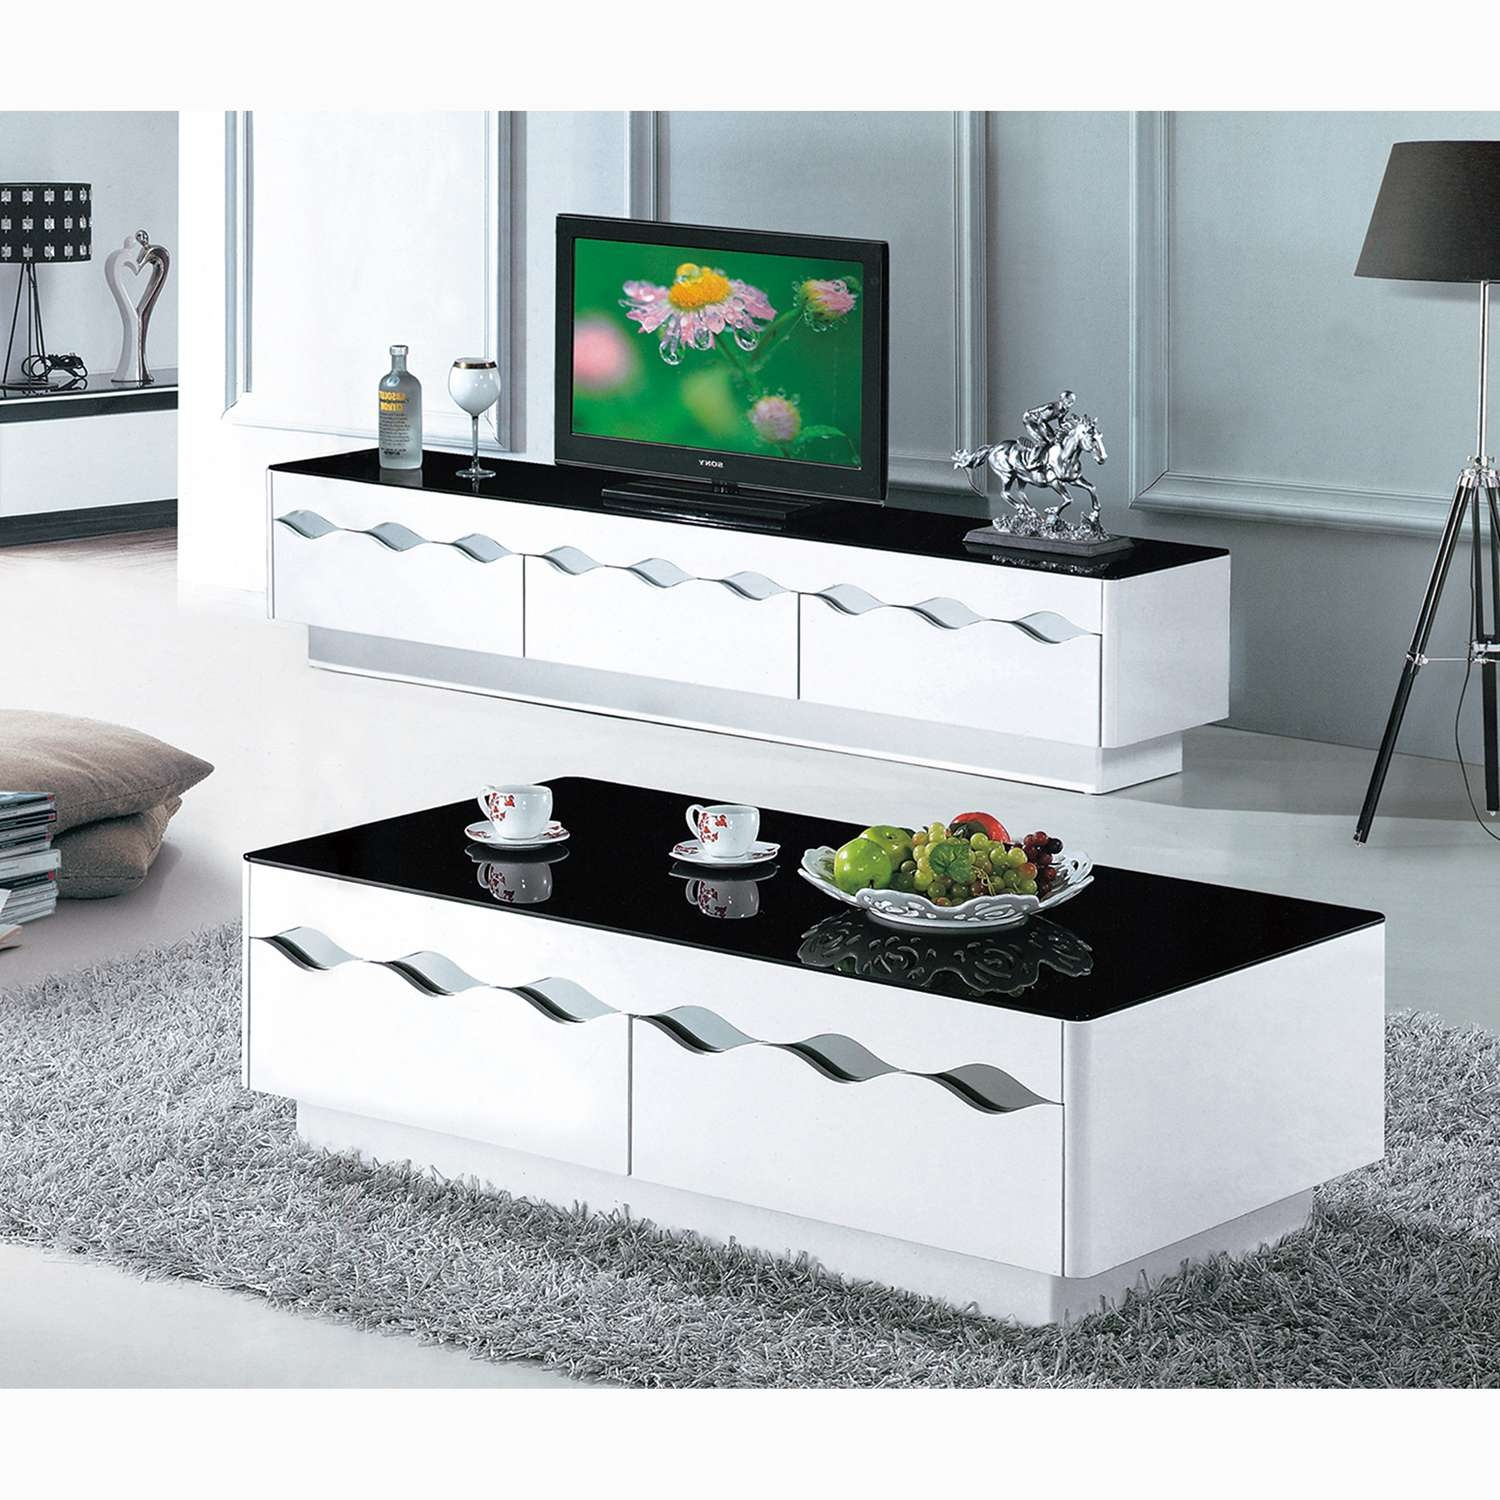 Widely Used Matching Tv Unit And Coffee Tables With Regard To Coffee Tables : Tv Stands The Best Matching Unit And Coffee Tables (View 20 of 20)